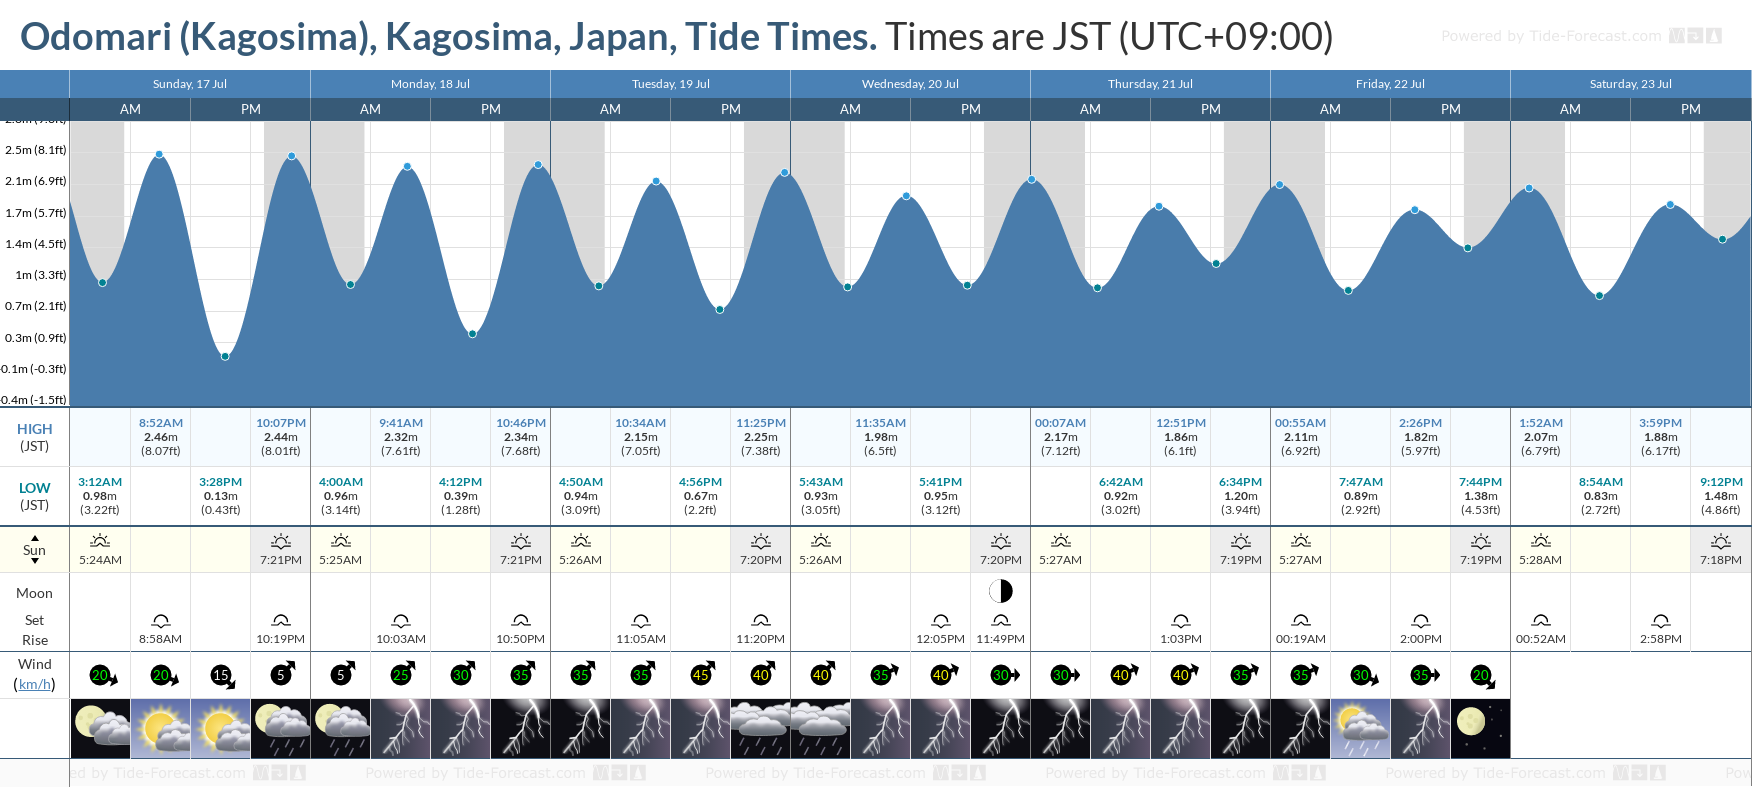 Odomari (Kagosima), Kagosima, Japan Tide Chart including high and low tide tide times for the next 7 days